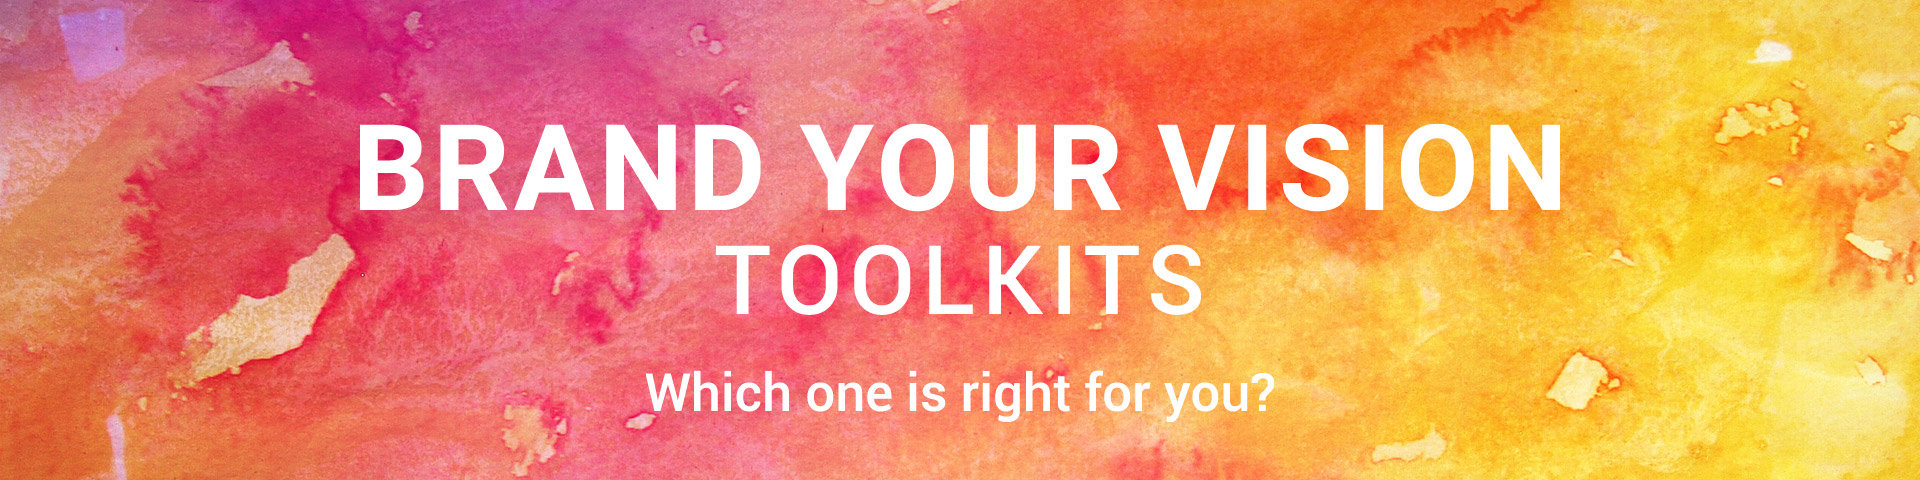 Brand Your Vision Toolkits.  Which one is right for you?